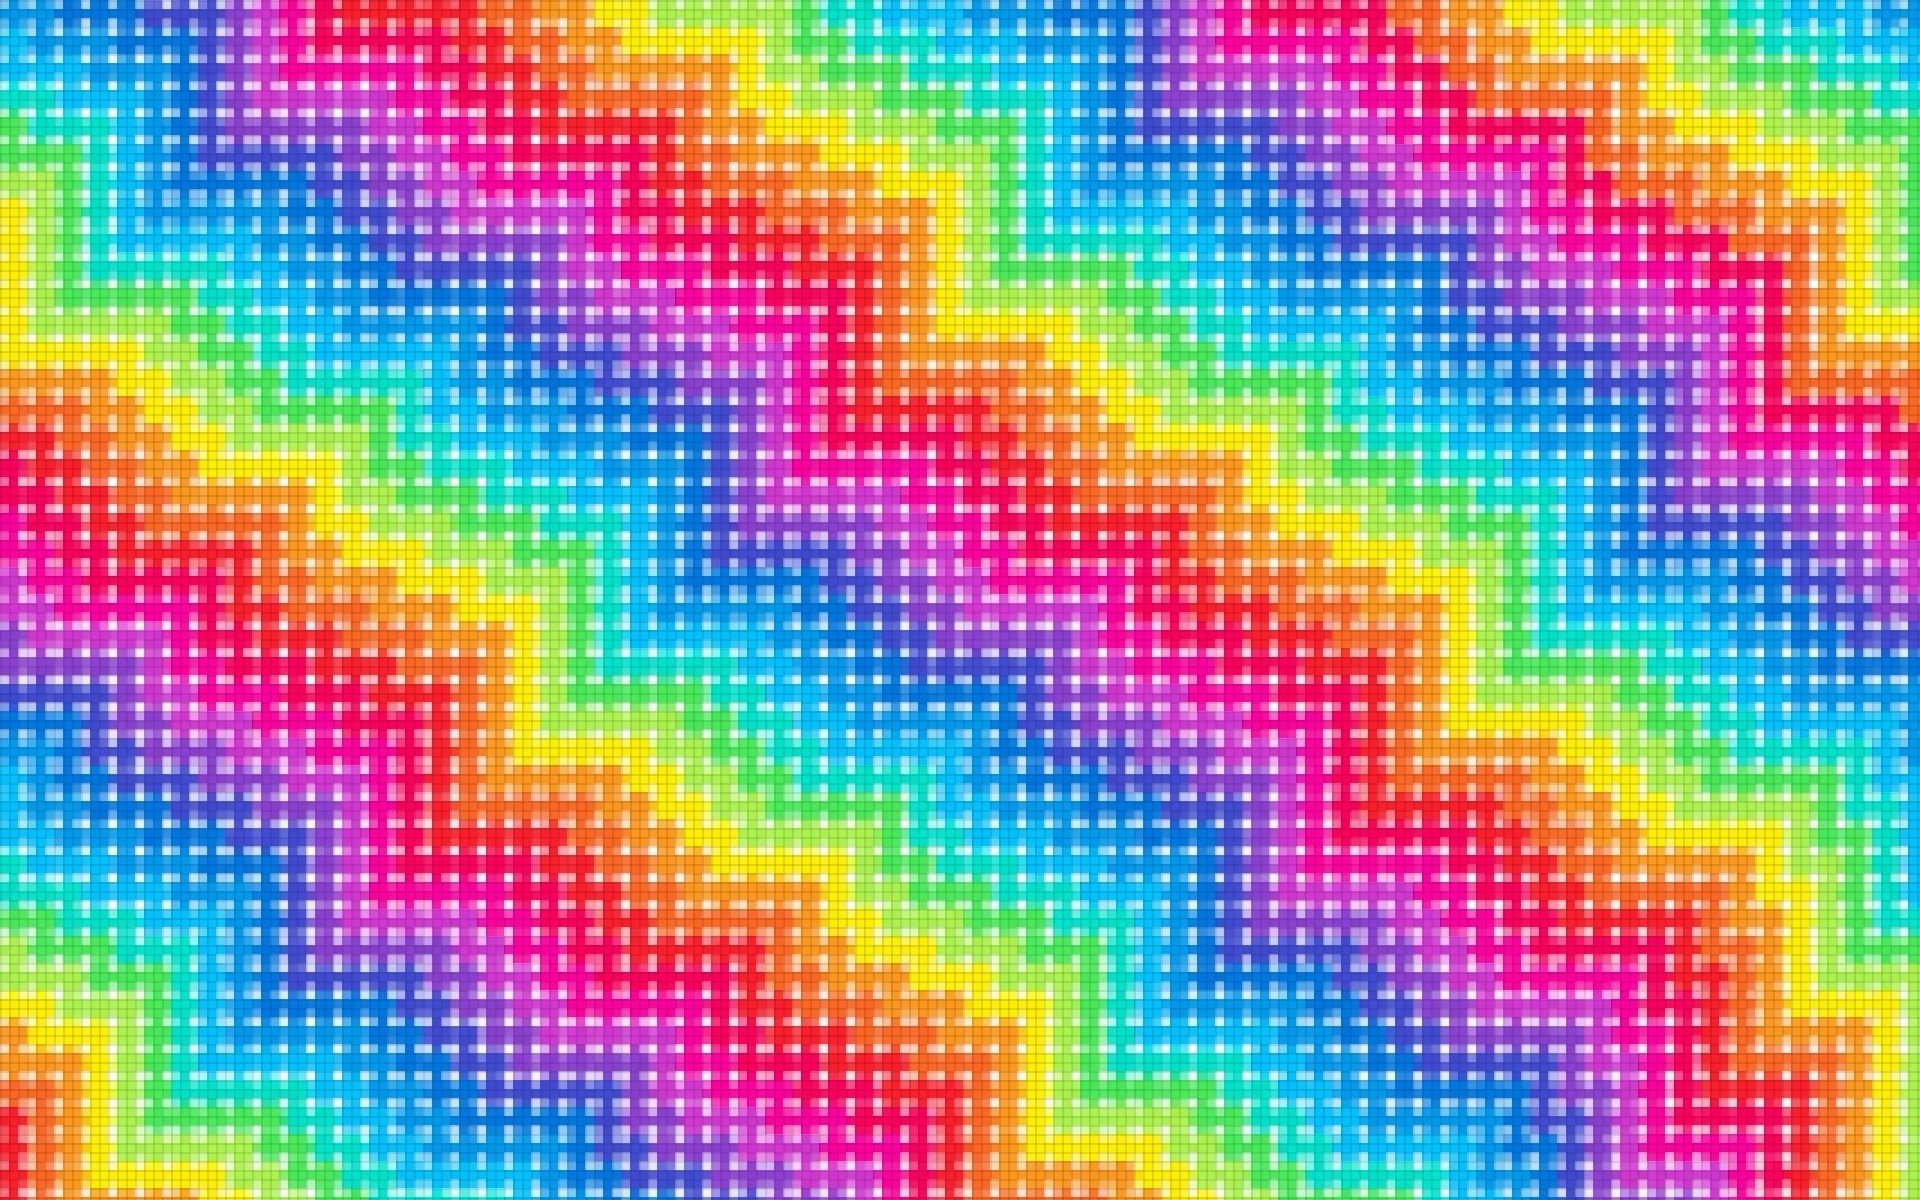 pixel rainbow wallpaper 71410